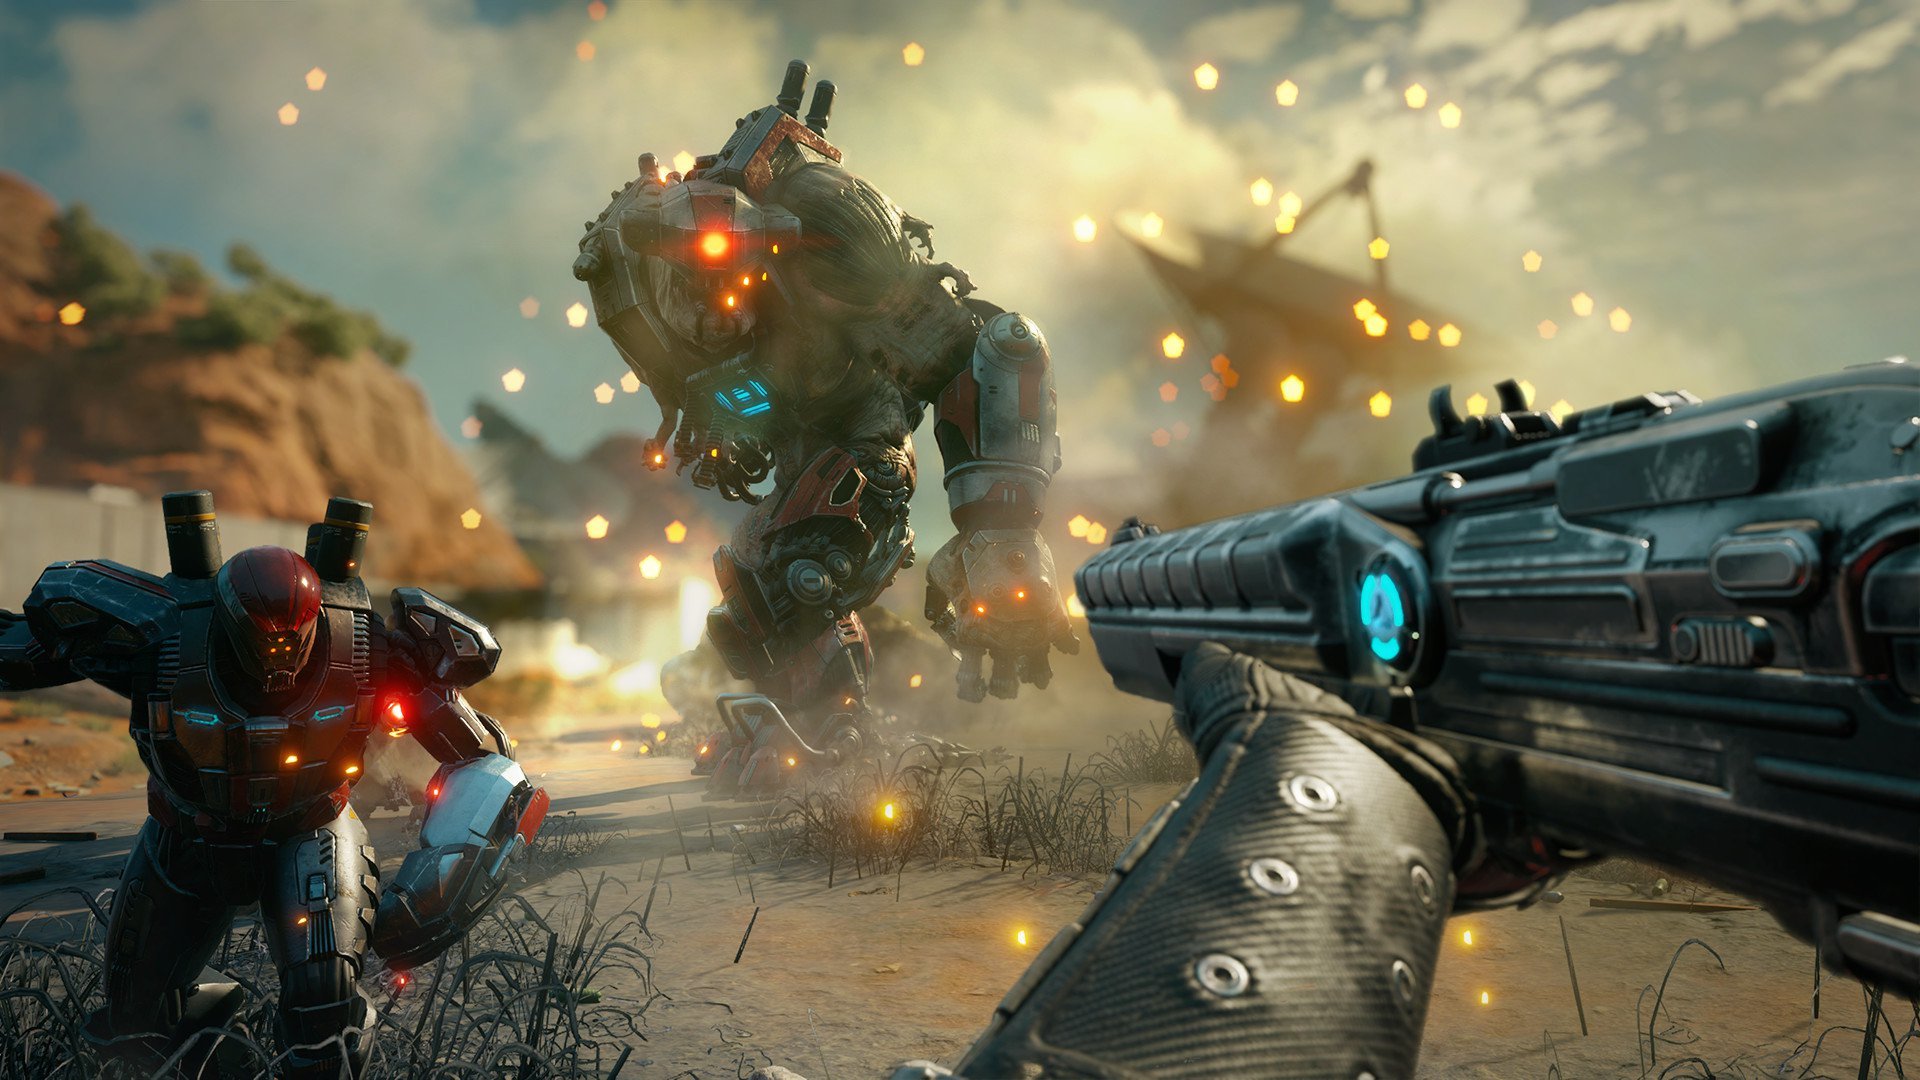 RAGE 2 Cheats - List of Cheats and How to Unlock Them - Guide - Push Infamous Ps Unlockables Map on